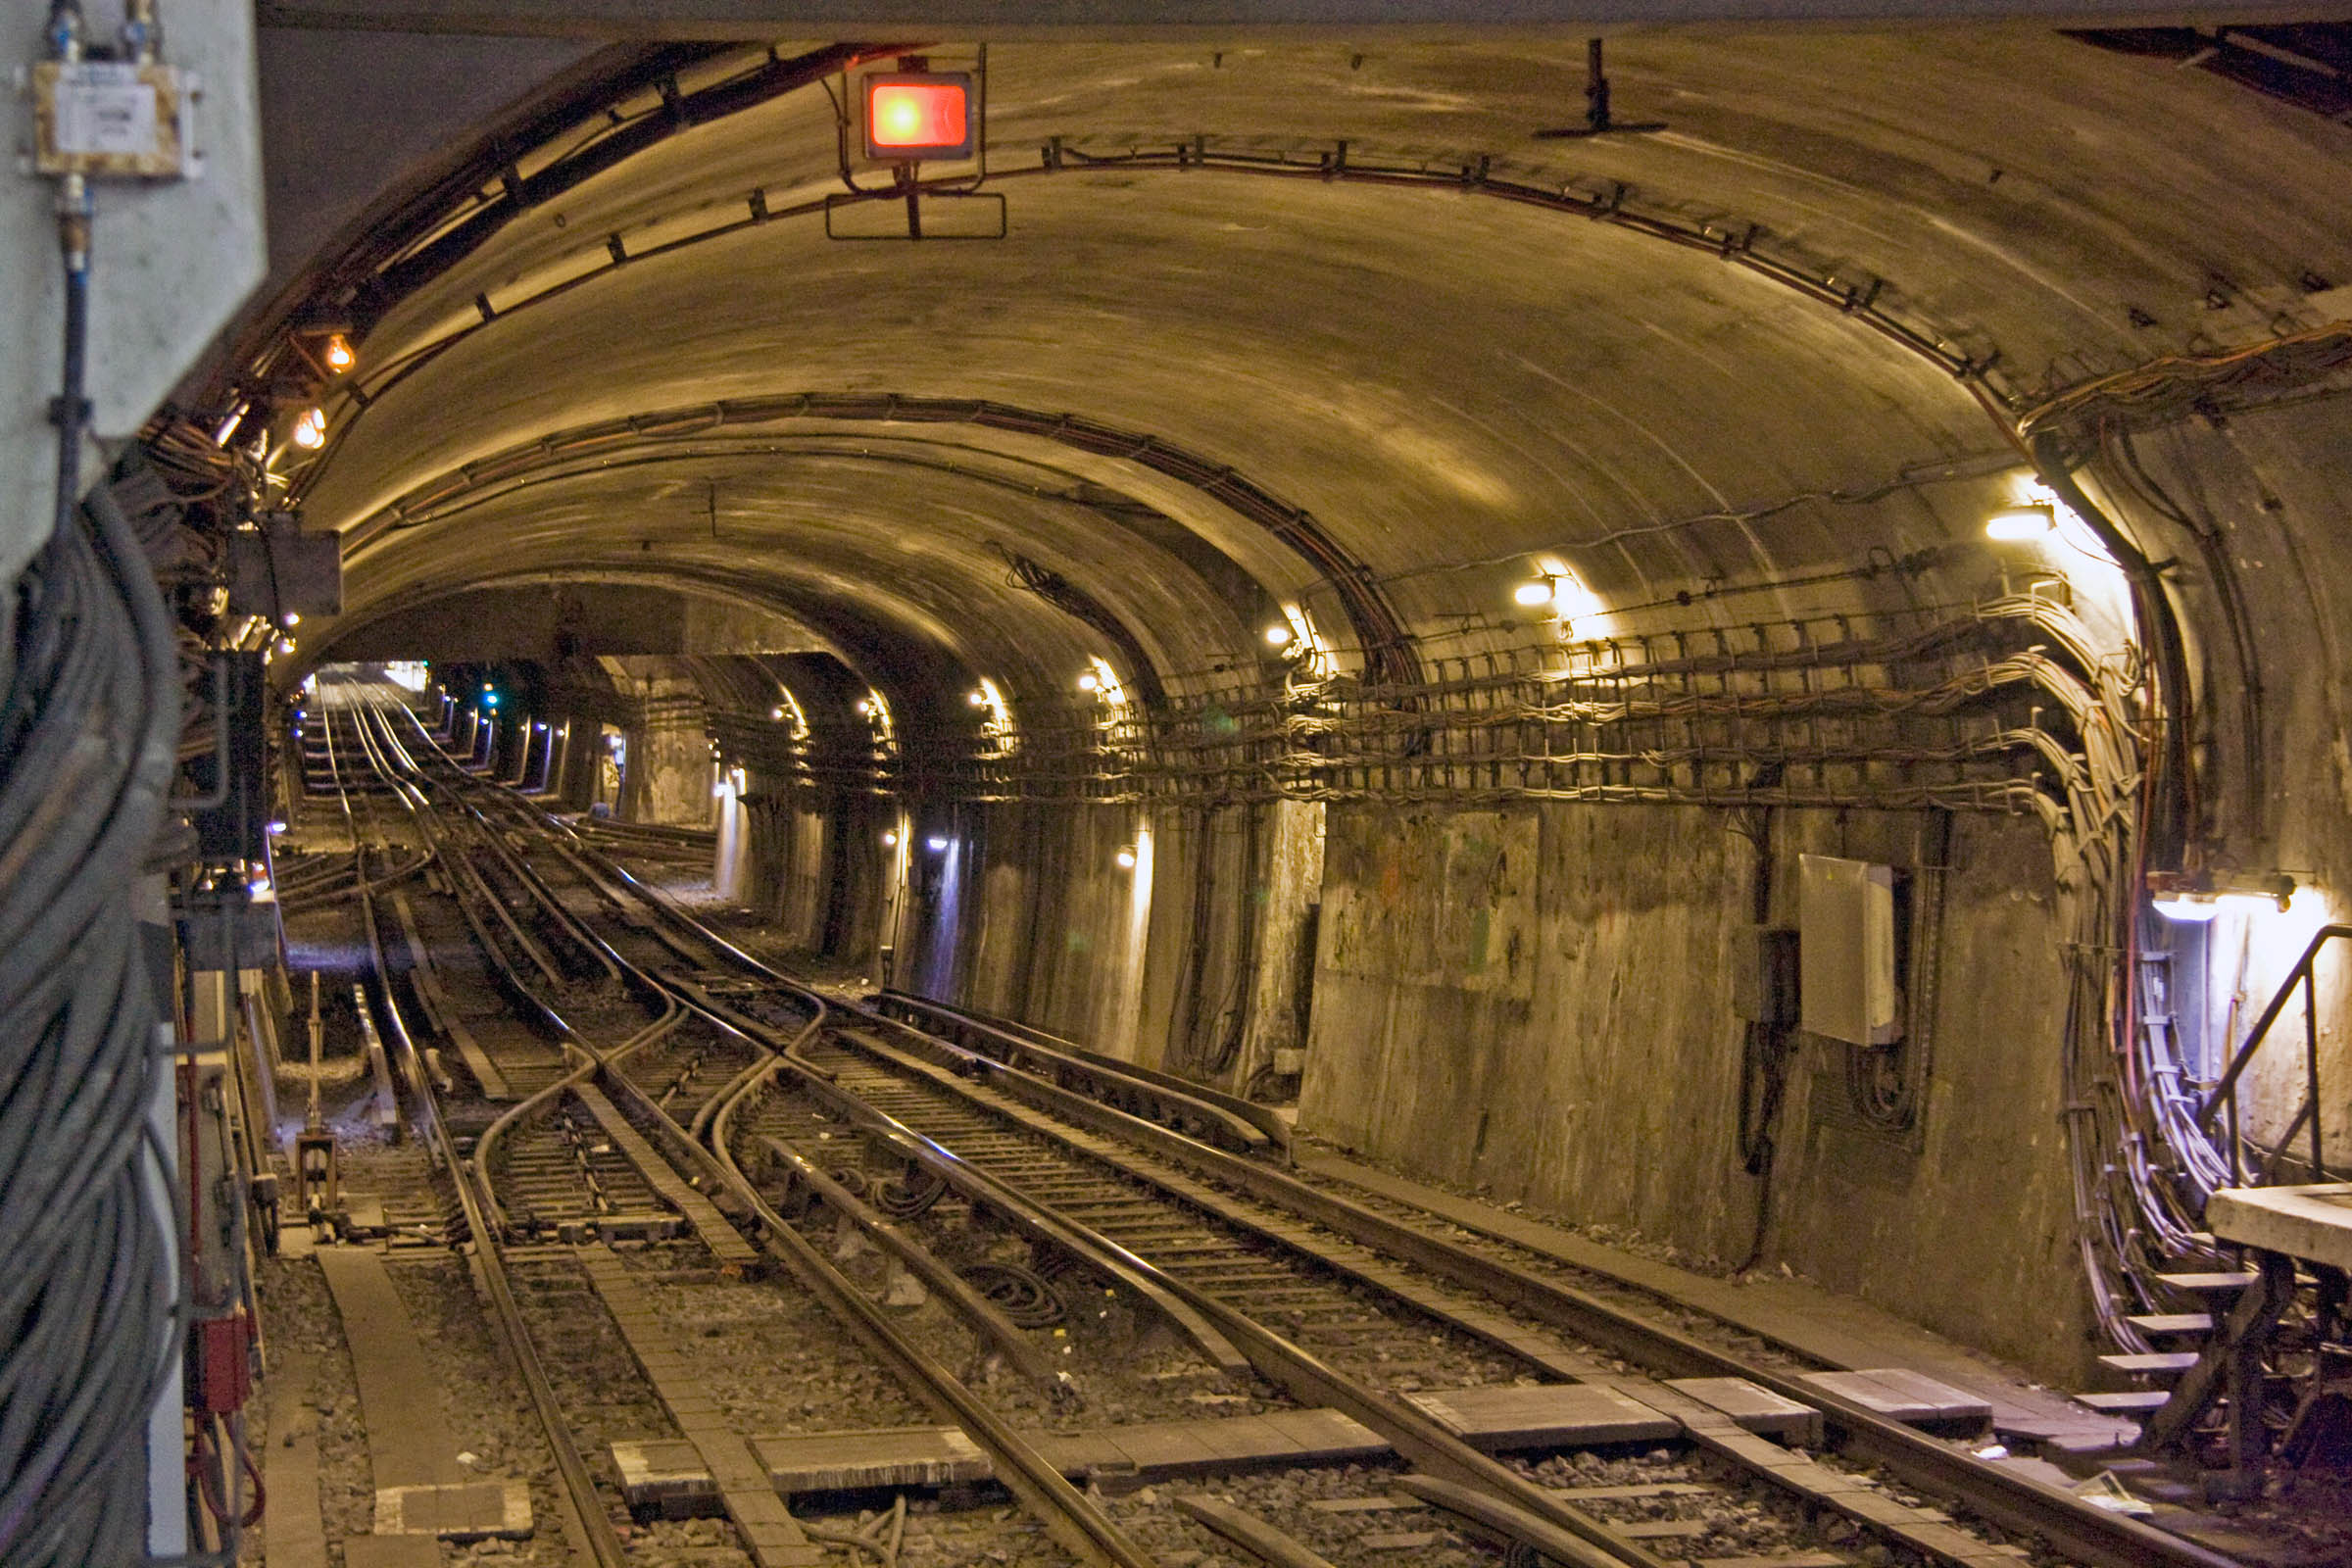 Paris Metro (RATP) tunnel as seen from station, Paris, France, 2010.